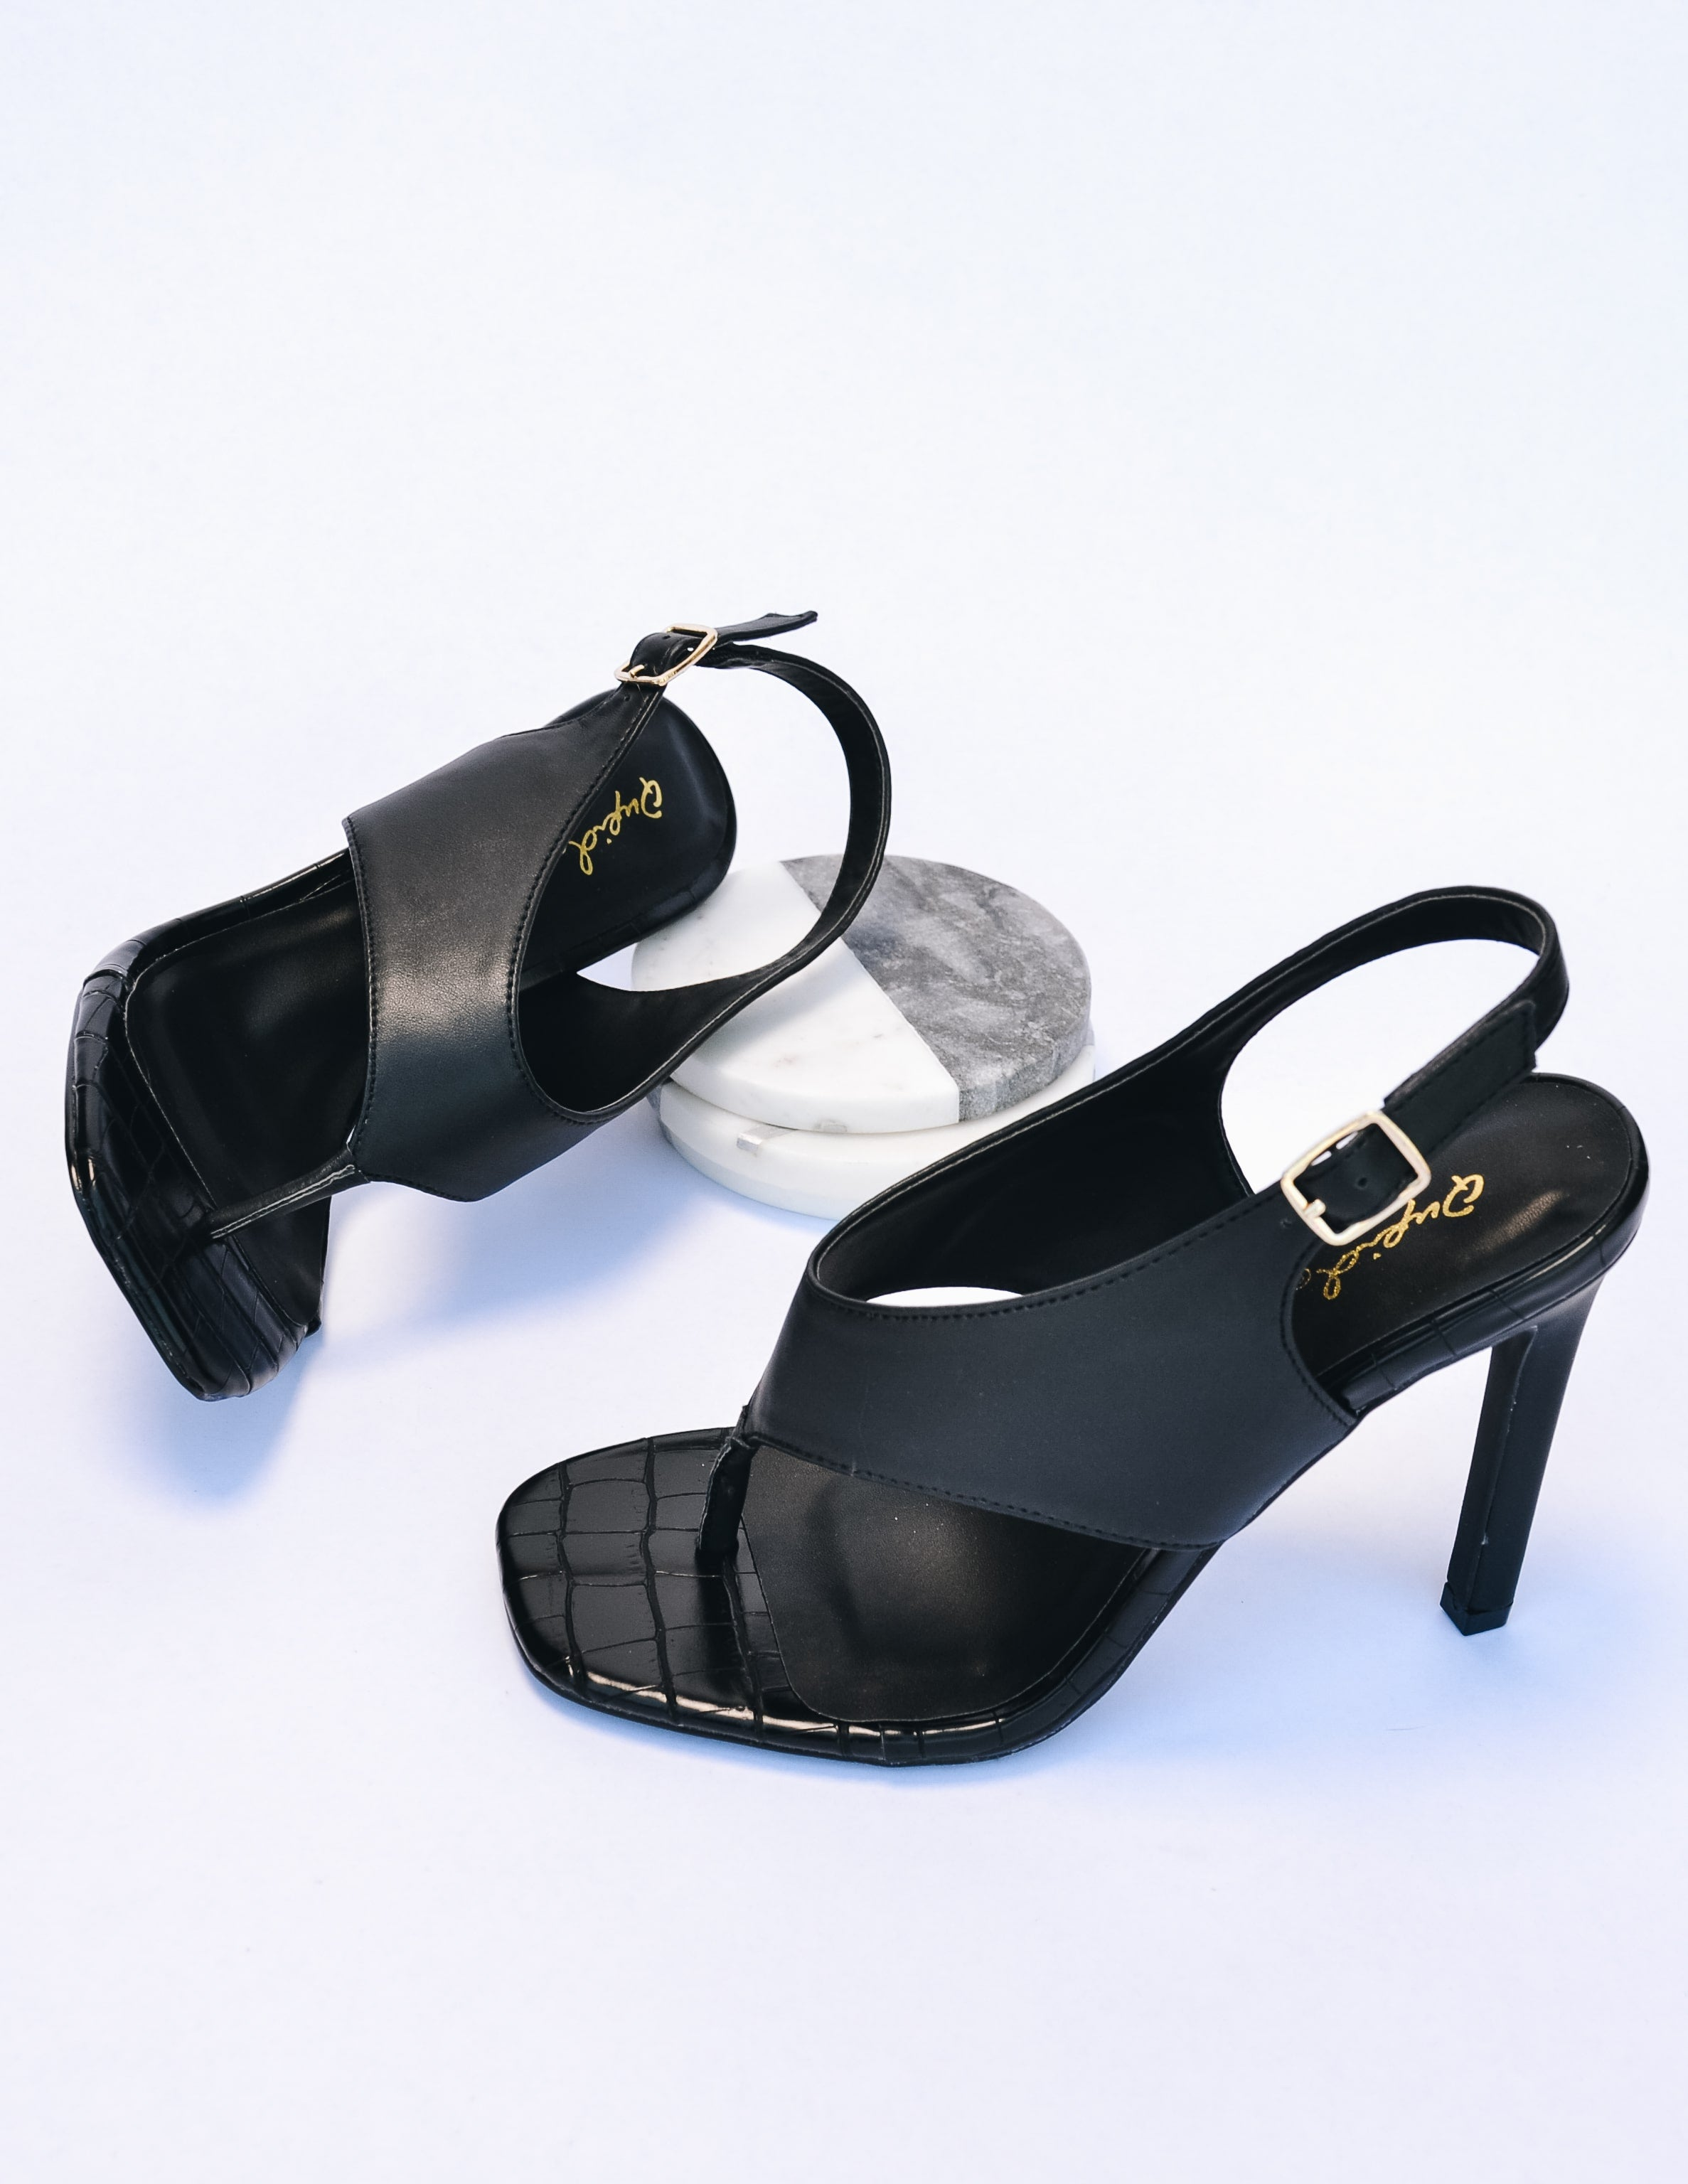 Club can't sandal me heel in black on white background